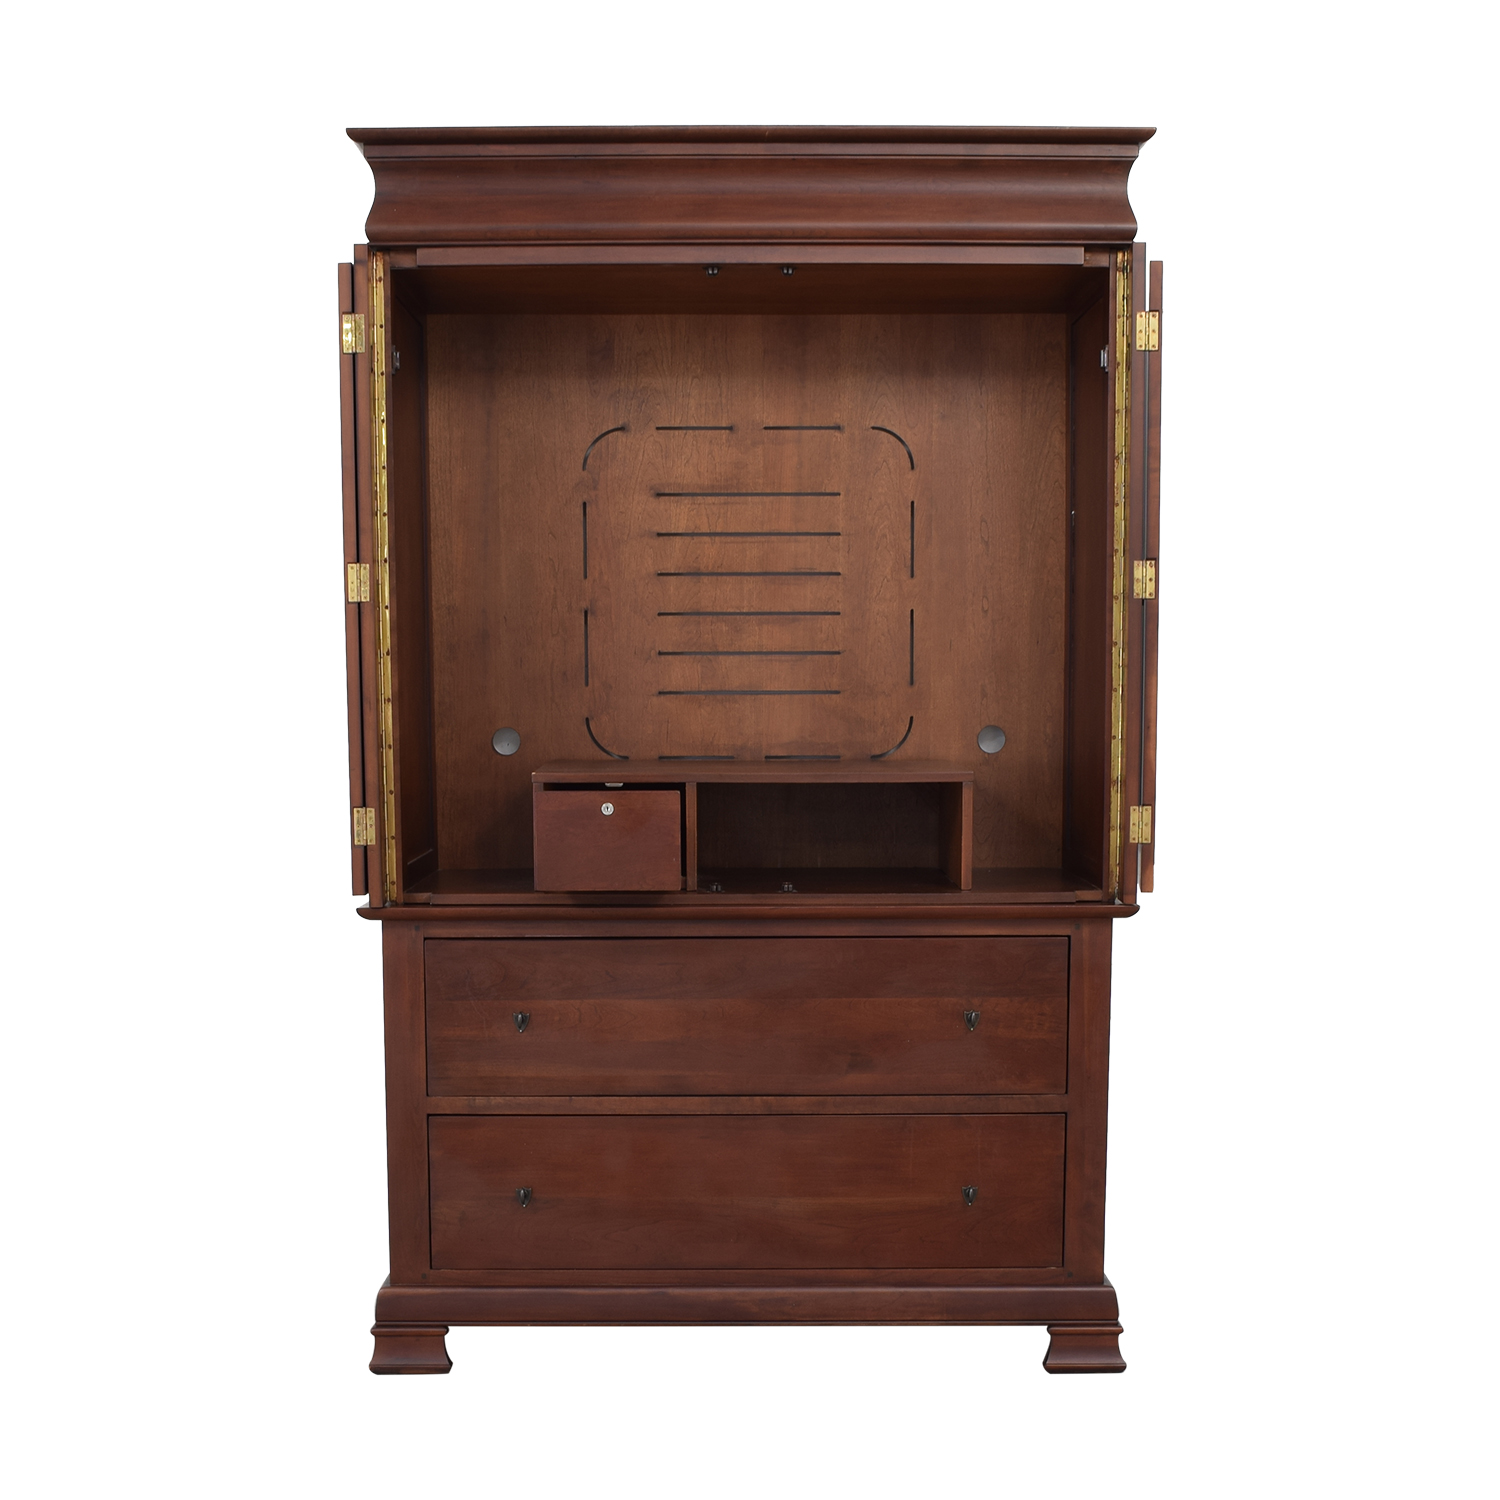 A-America Wood Furniture A-America Wood Furniture Wood Entertainment Armoire Wardrobes & Armoires